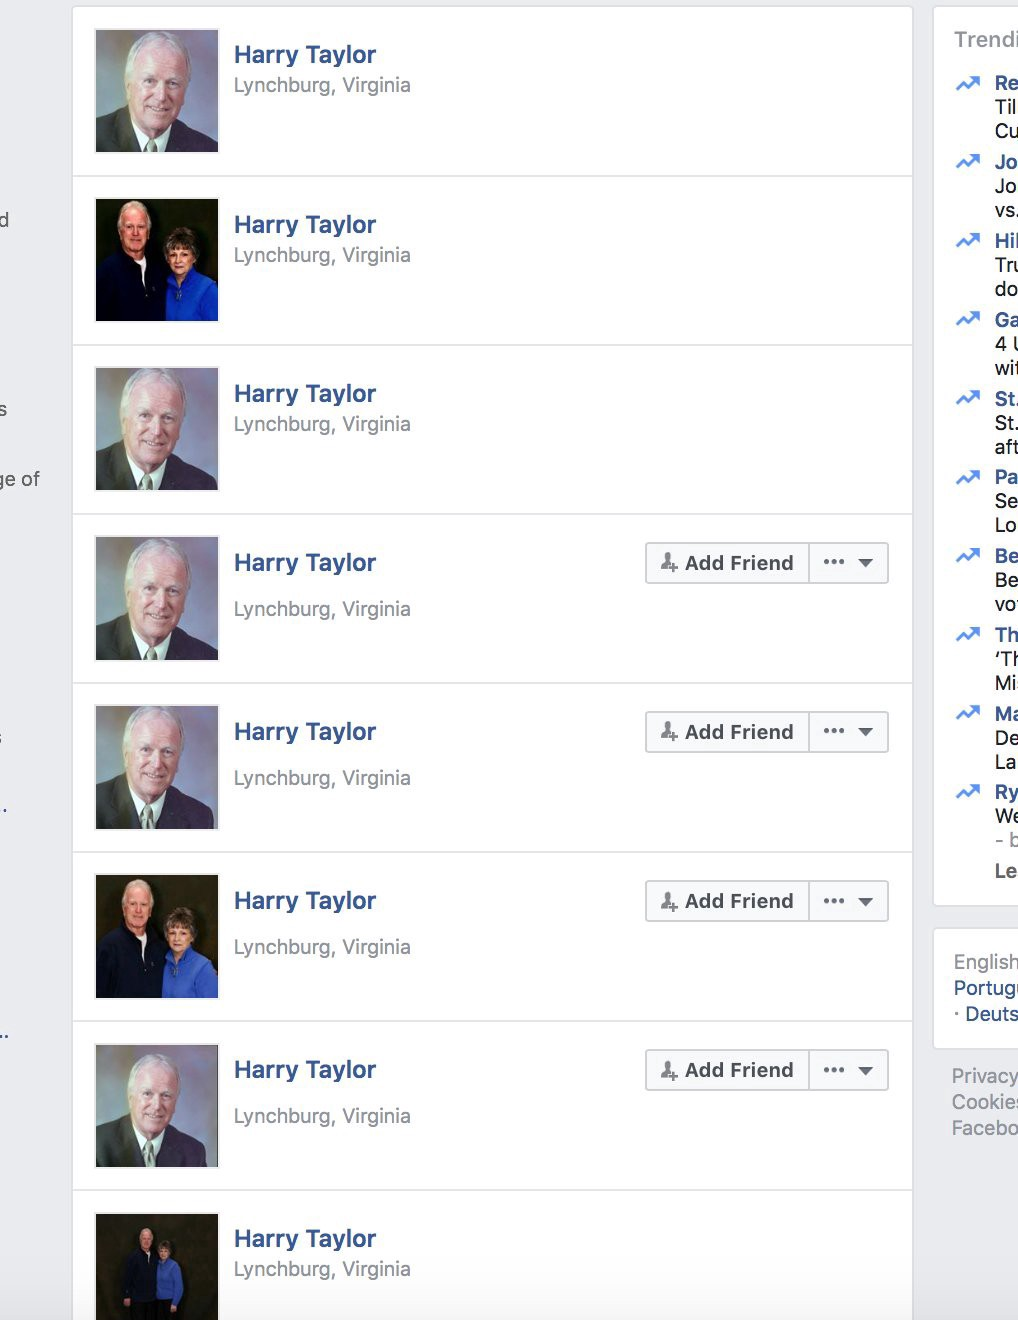 CHRYSTAL: Pictures to use for fake profiles